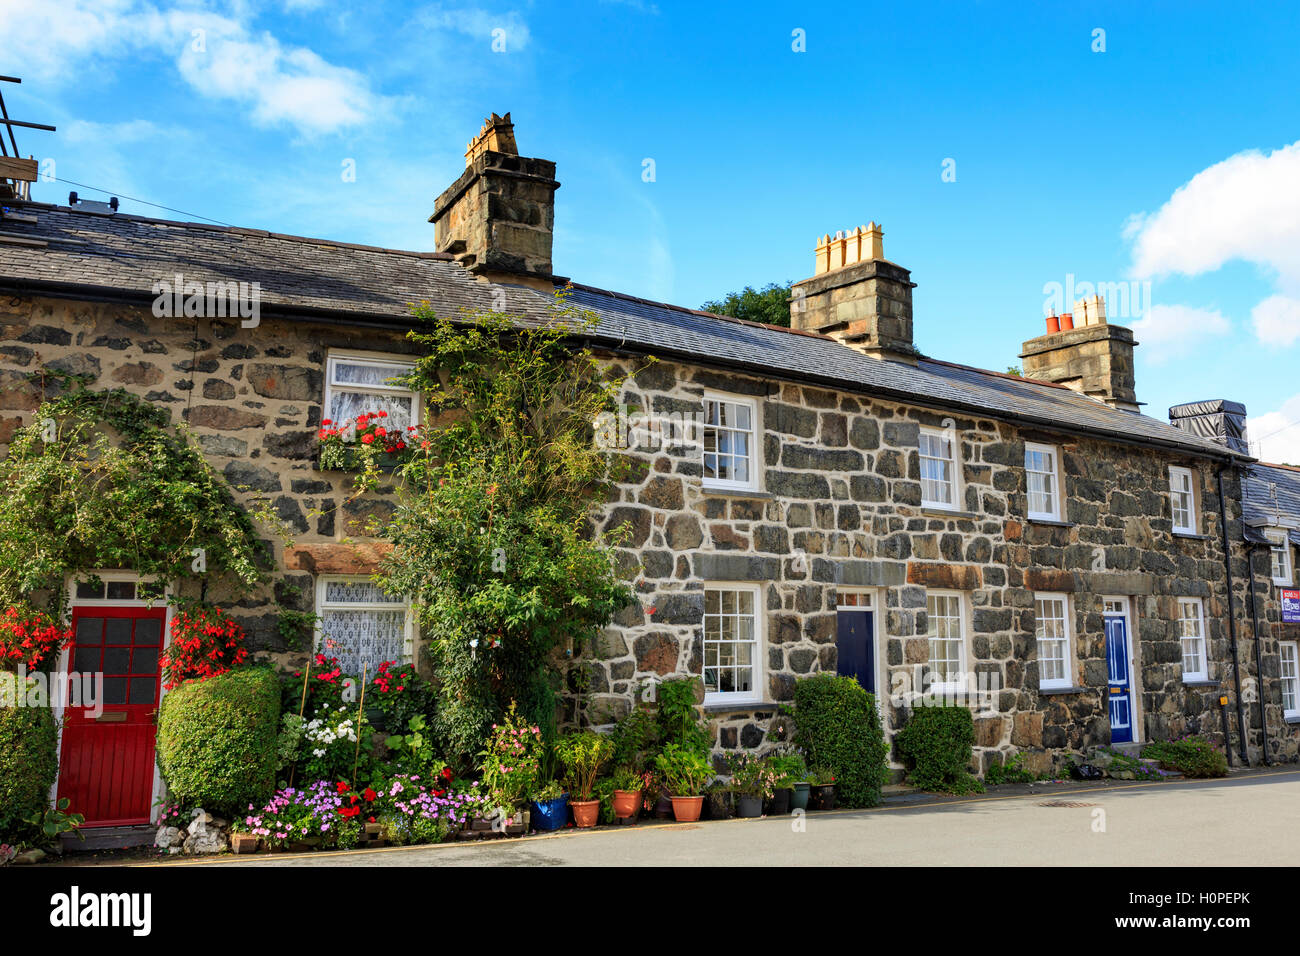 Royal Ship Hotel Dolgellau United Kingdom